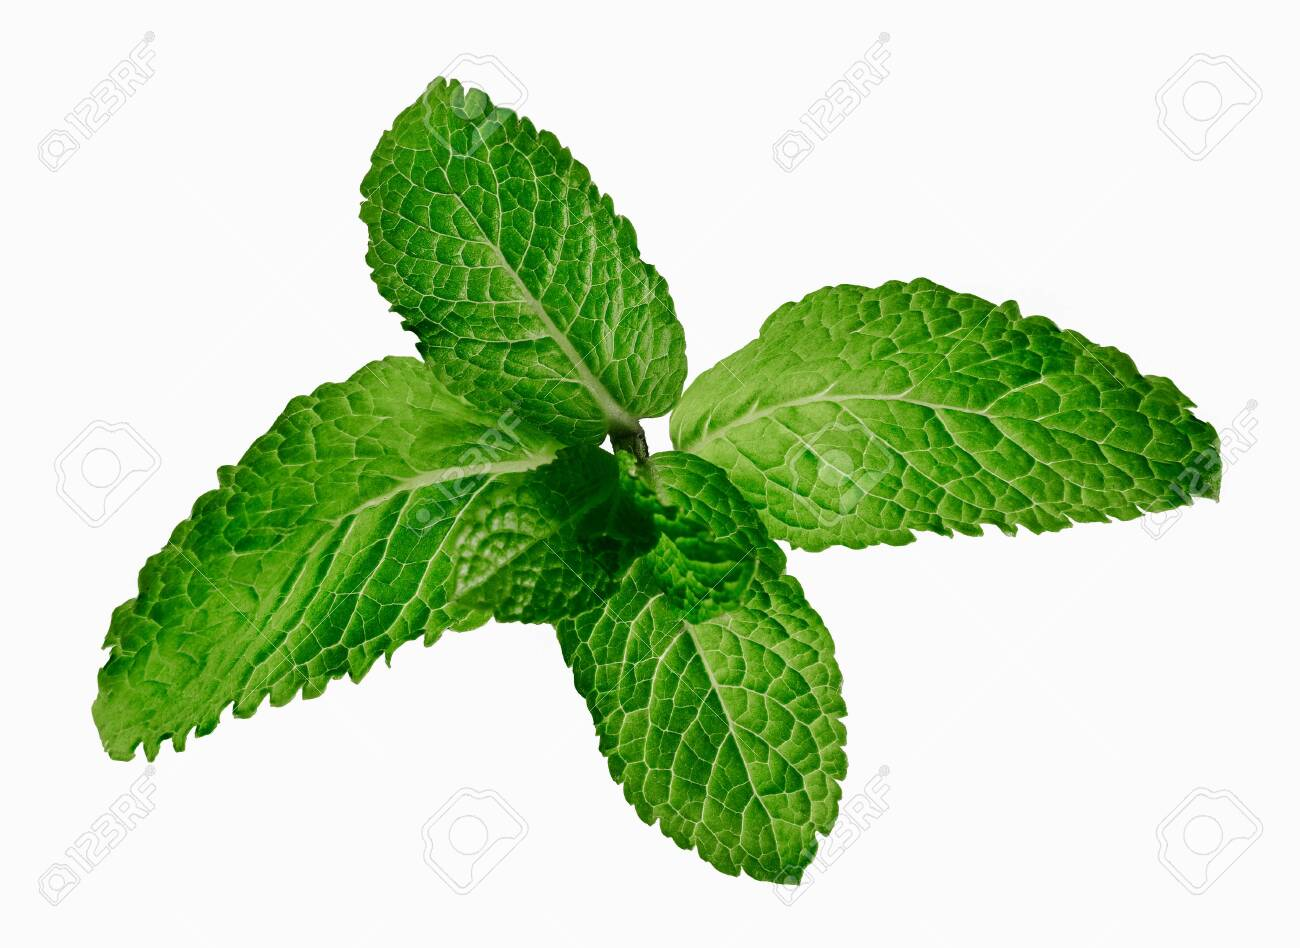 Fresh mint leaves isolated on white background - 136589668